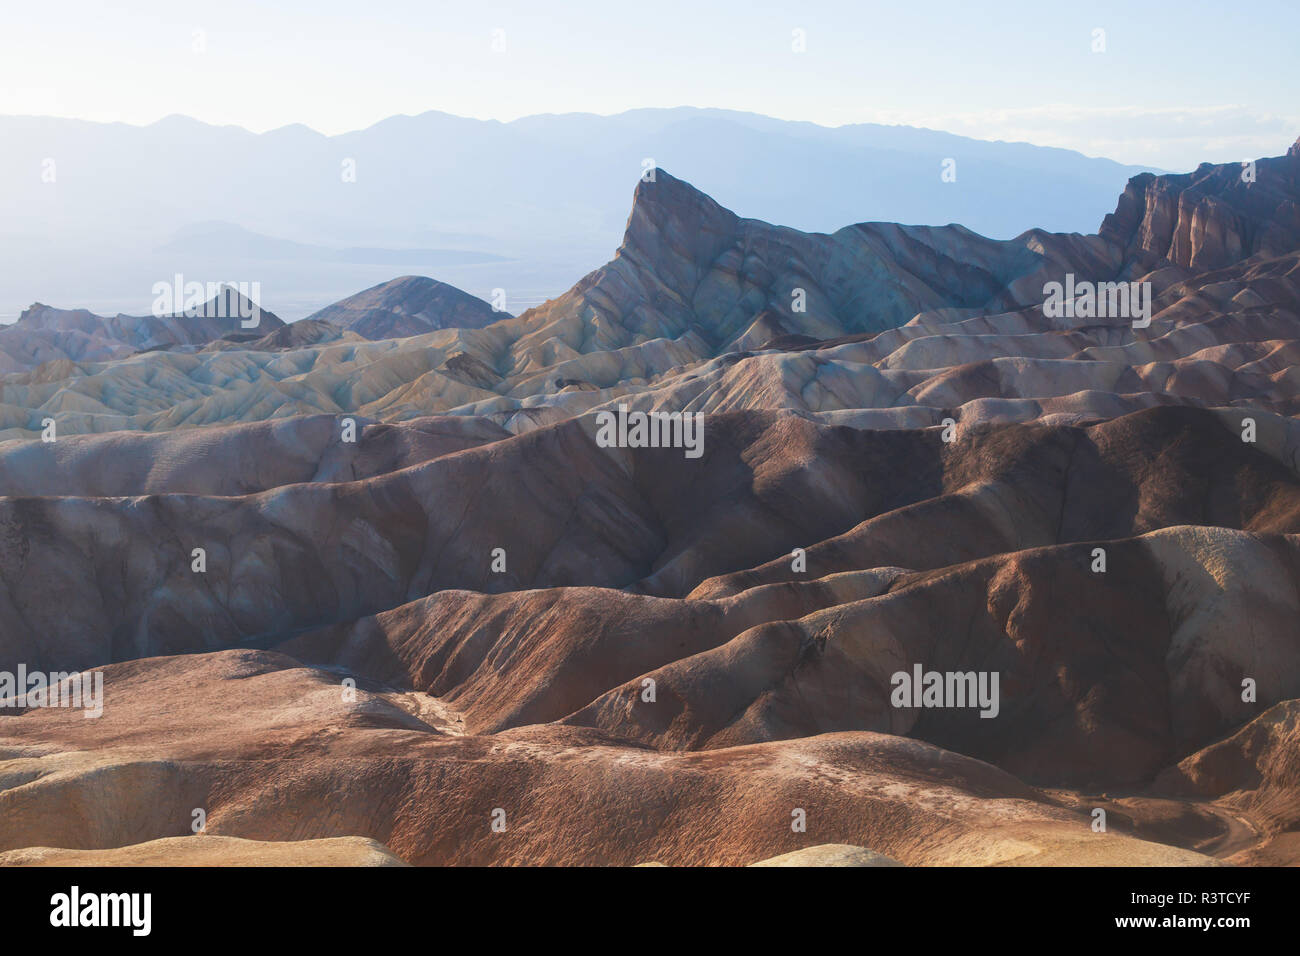 Vibrant panoramic summer view of Zabriskie point badlands in Death Valley National Park, Death Valley, Inyo County, California, USA Stock Photo